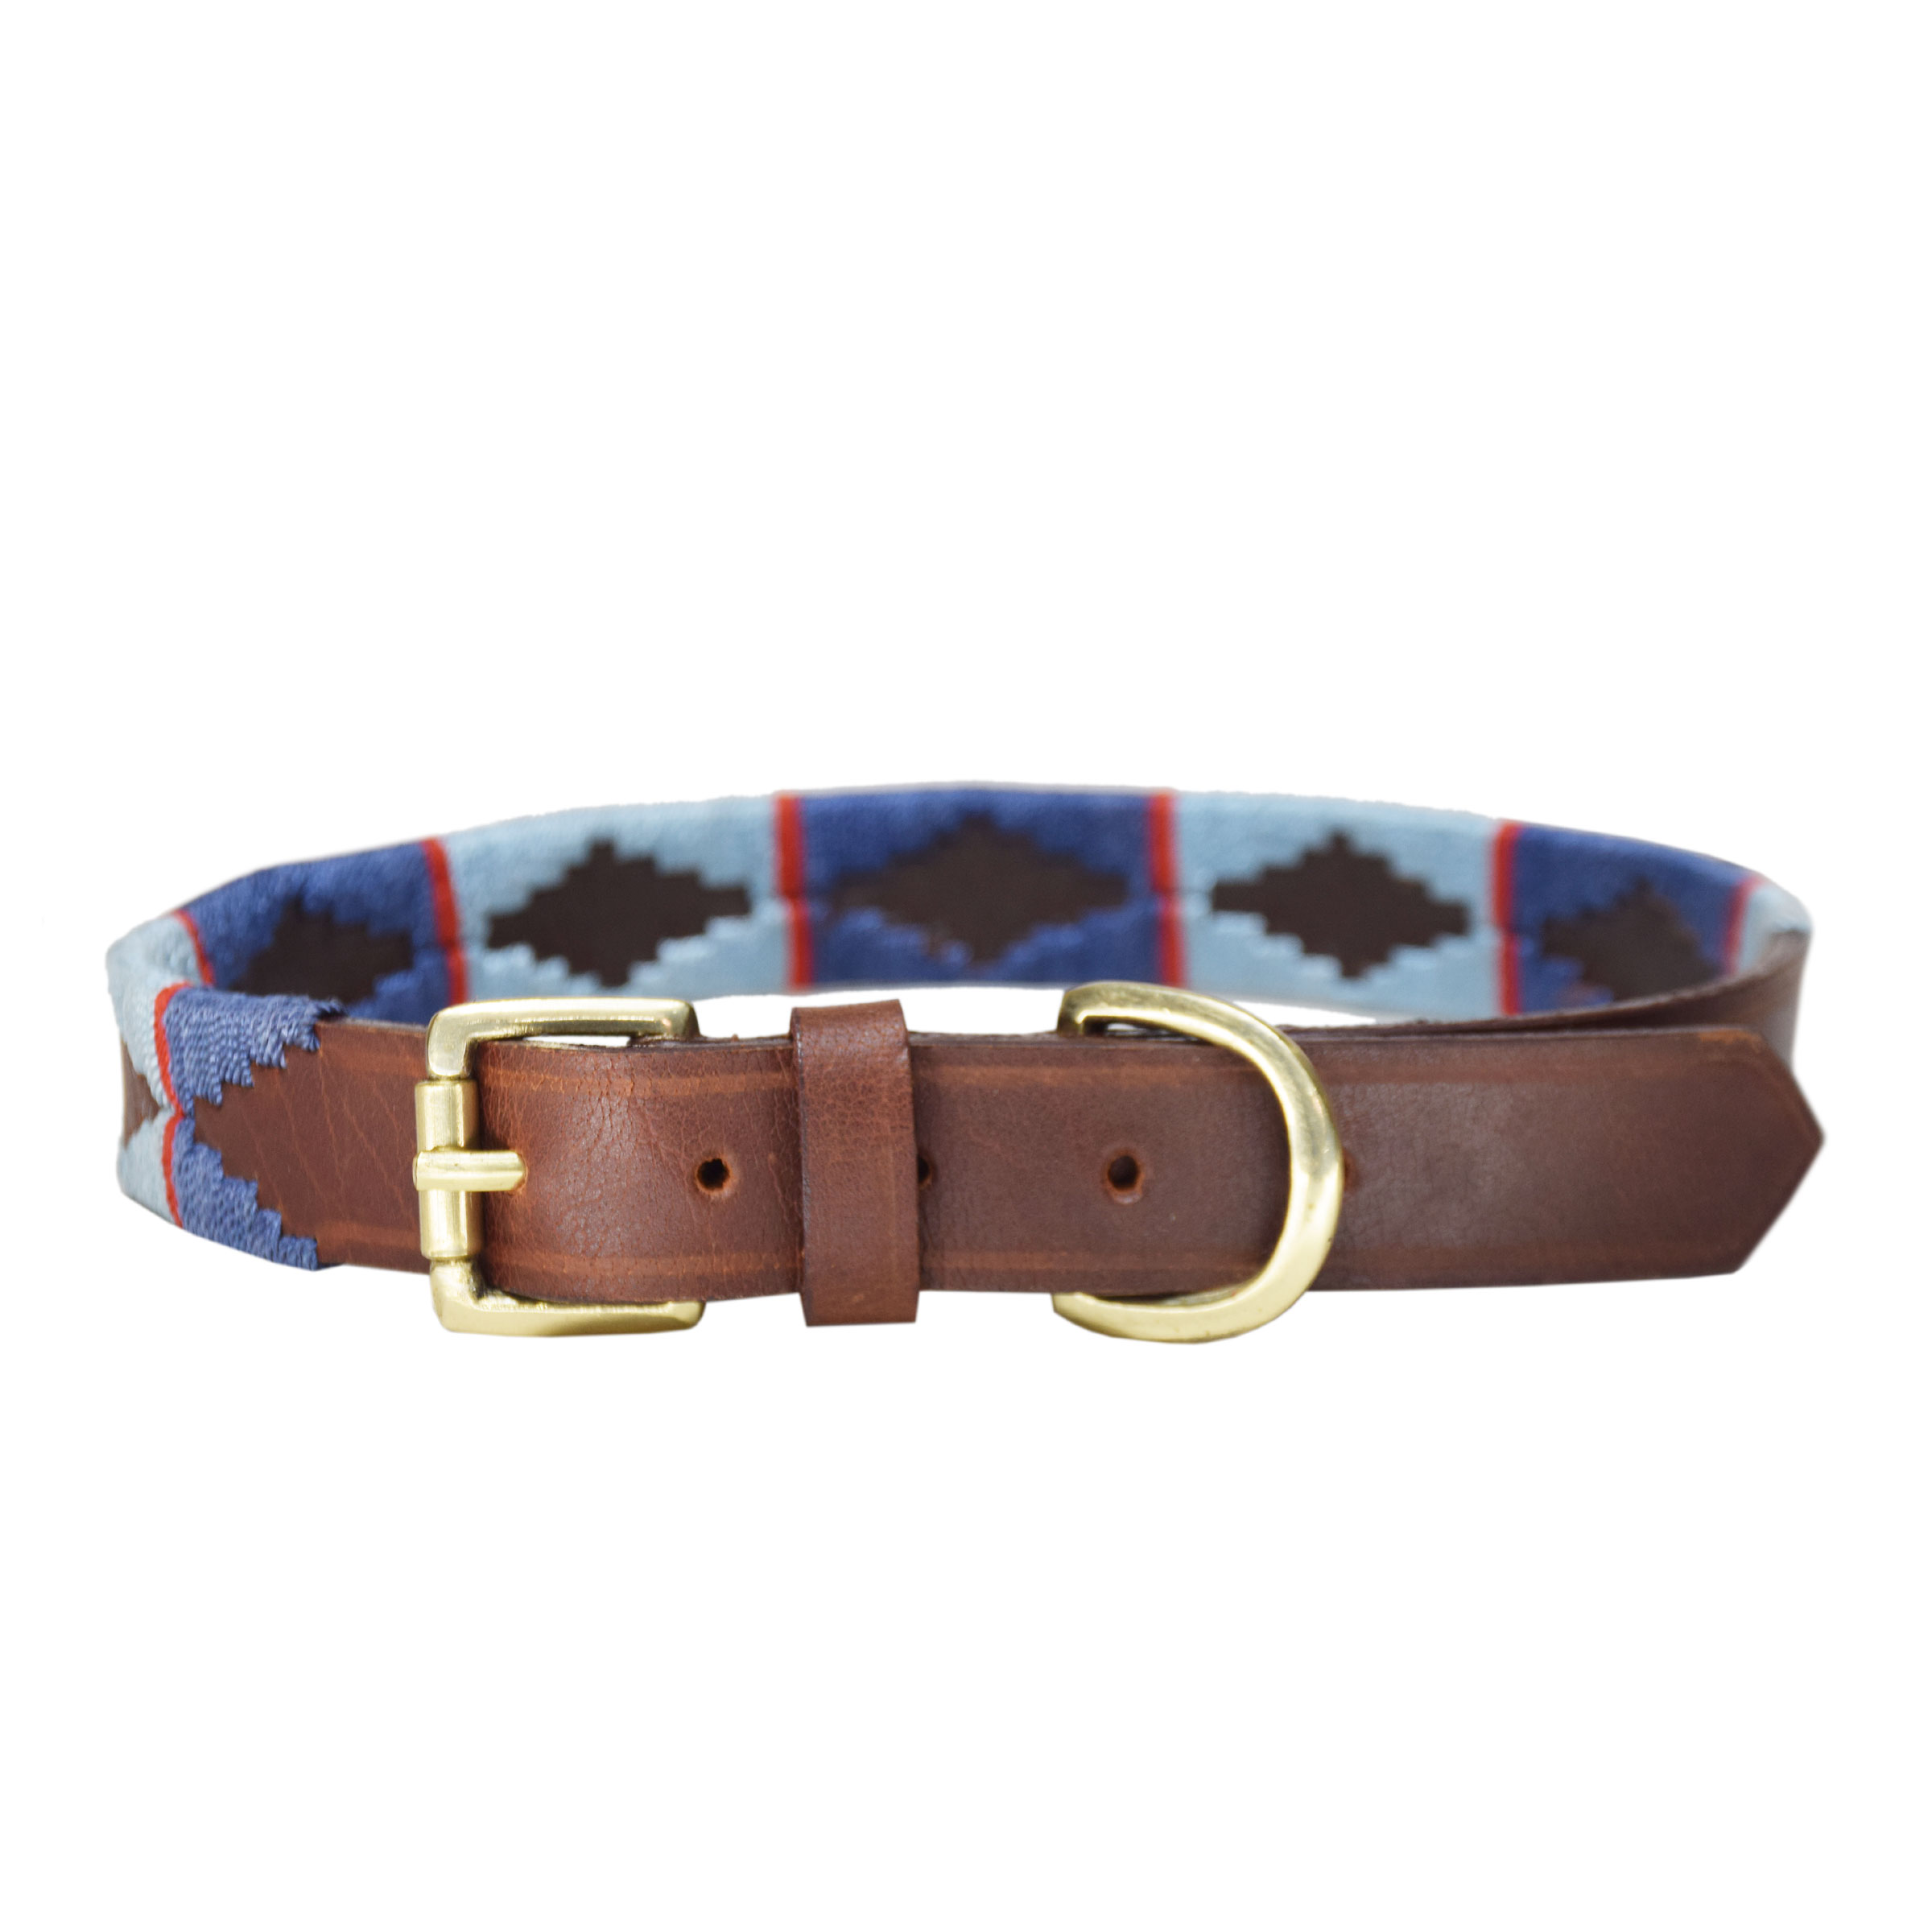 BROWN PET POLO COLLAR BELT FOR PETS 6MM